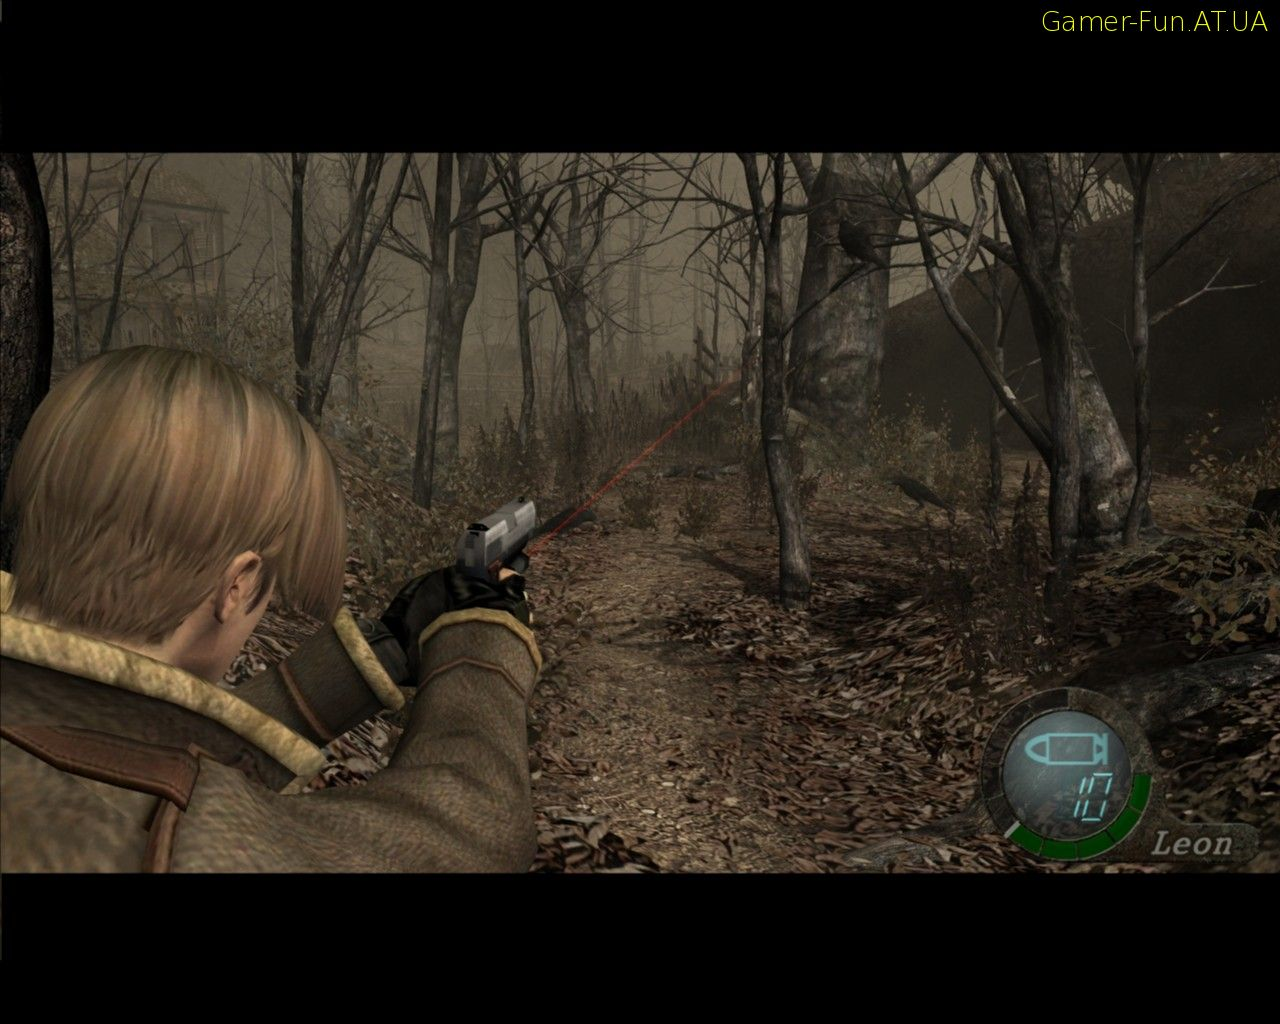 Resident Evil 4: Ultimate HD Edition [v 1.0.6] (2014) Русская версия [RePack], скриншоты Resident Evil 4: Ultimate HD Edition [v 1.0.6] (2014) Русская версия [RePack], скачать Resident Evil 4: Ultimate HD Edition [v 1.0.6] (2014) Русская версия [RePack], картинки Resident Evil 4: Ultimate HD Edition [v 1.0.6] (2014) Русская версия [RePack], постер Resident Evil 4: Ultimate HD Edition [v 1.0.6] (2014) Русская версия [RePack]